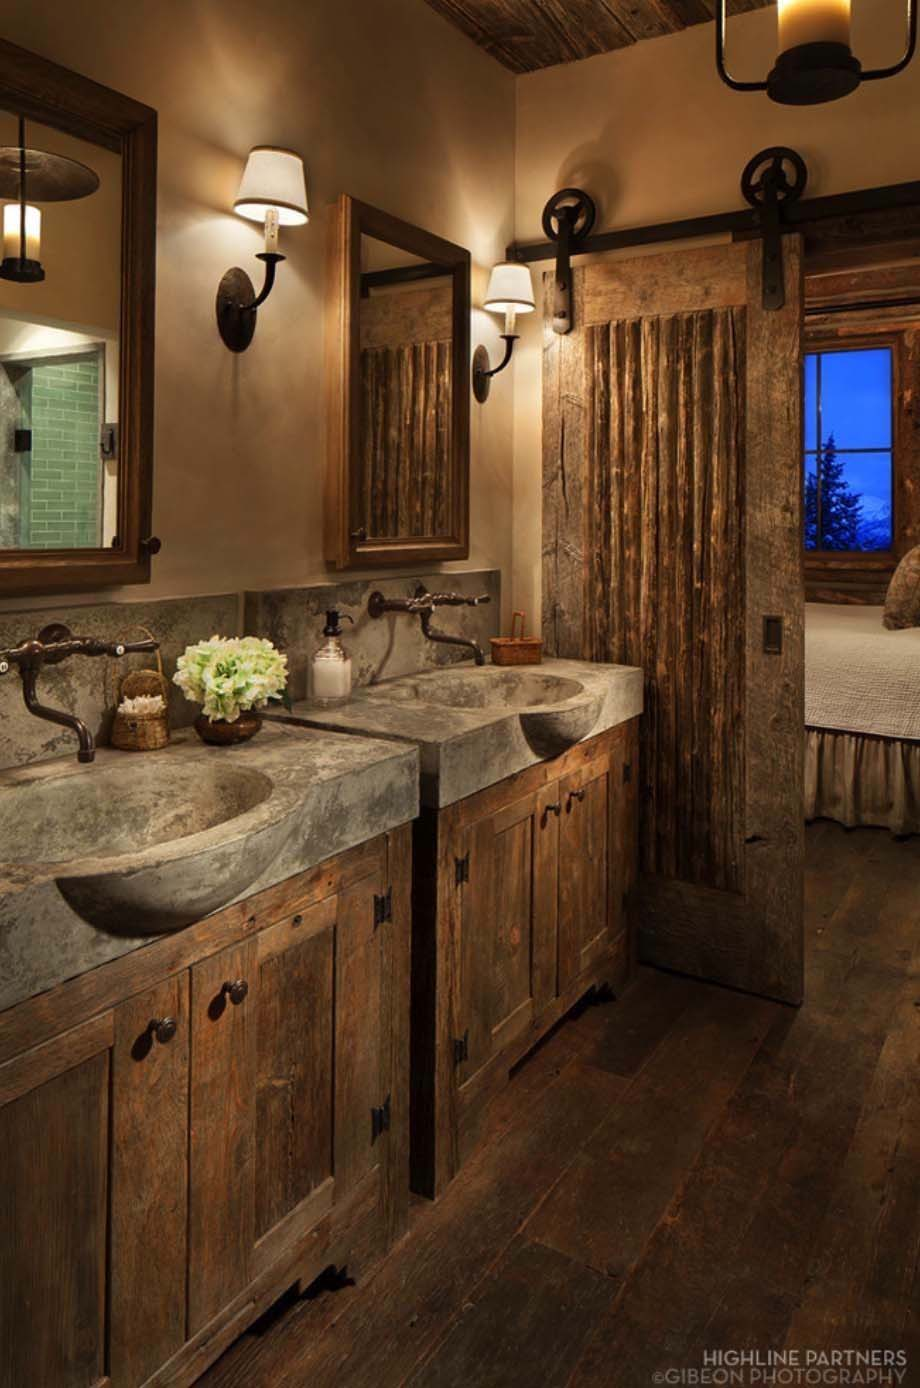 31 Best Rustic Bathroom Design And Decor Ideas For 2020